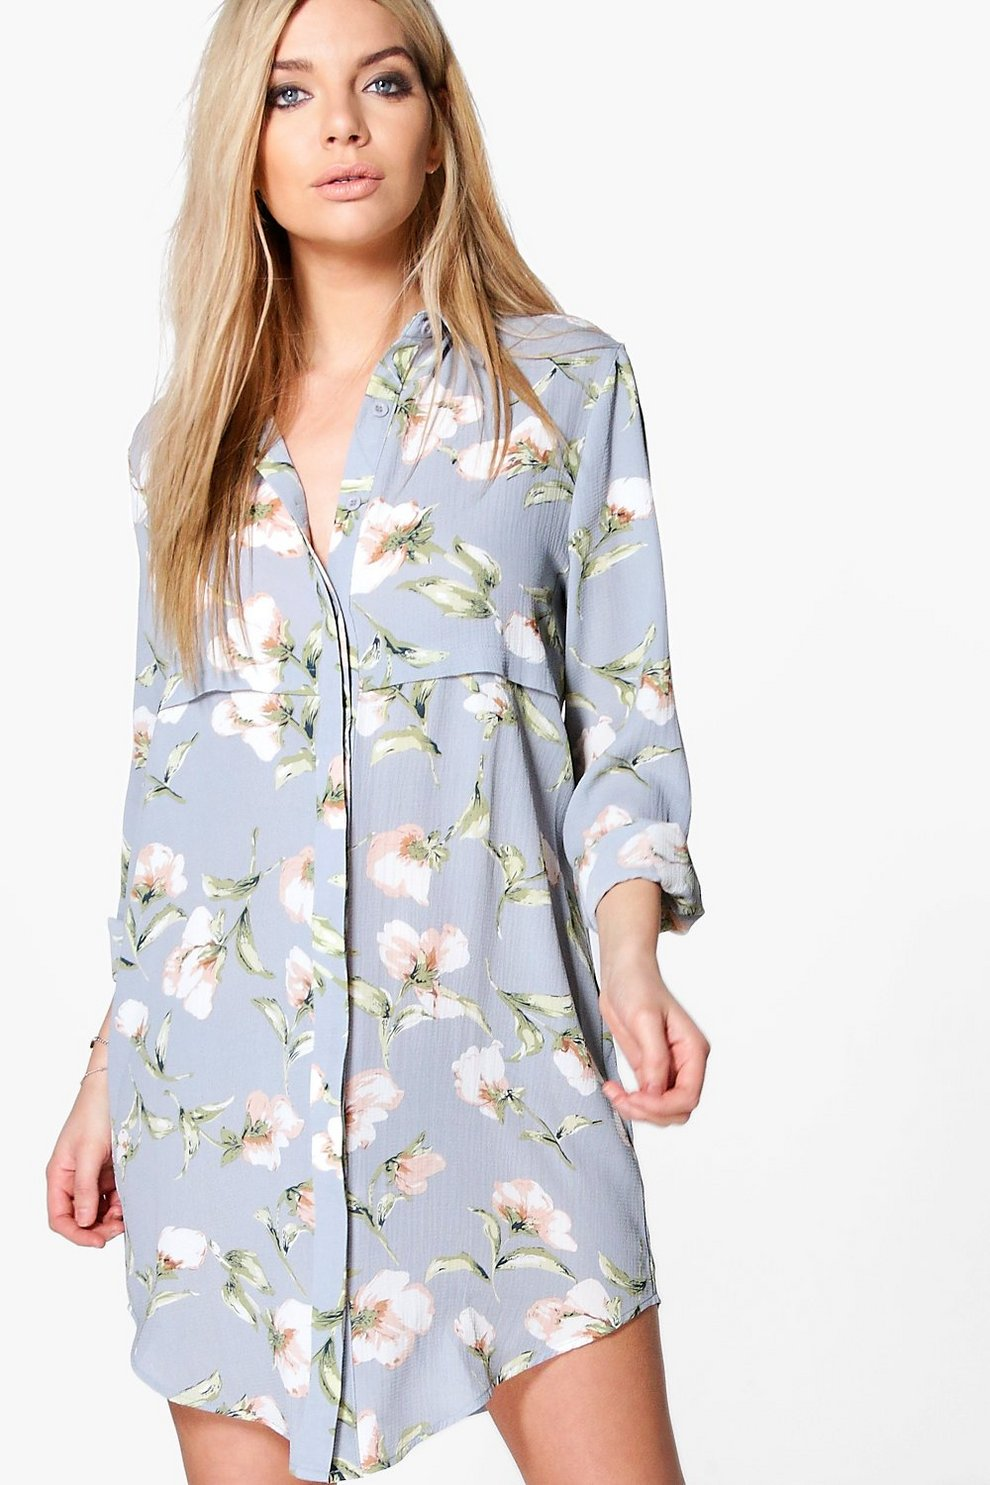 Boohoo Floral Printed Shirt Dress Outlet Countdown Package oTjf5fVdd